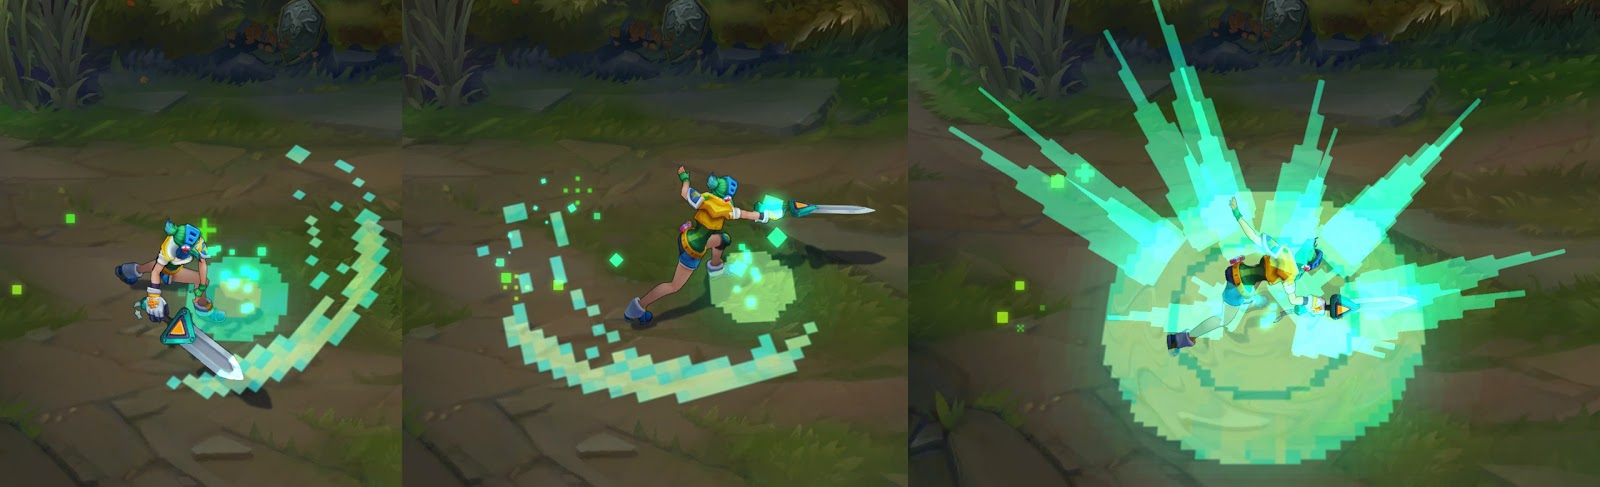 pbe how to get rp